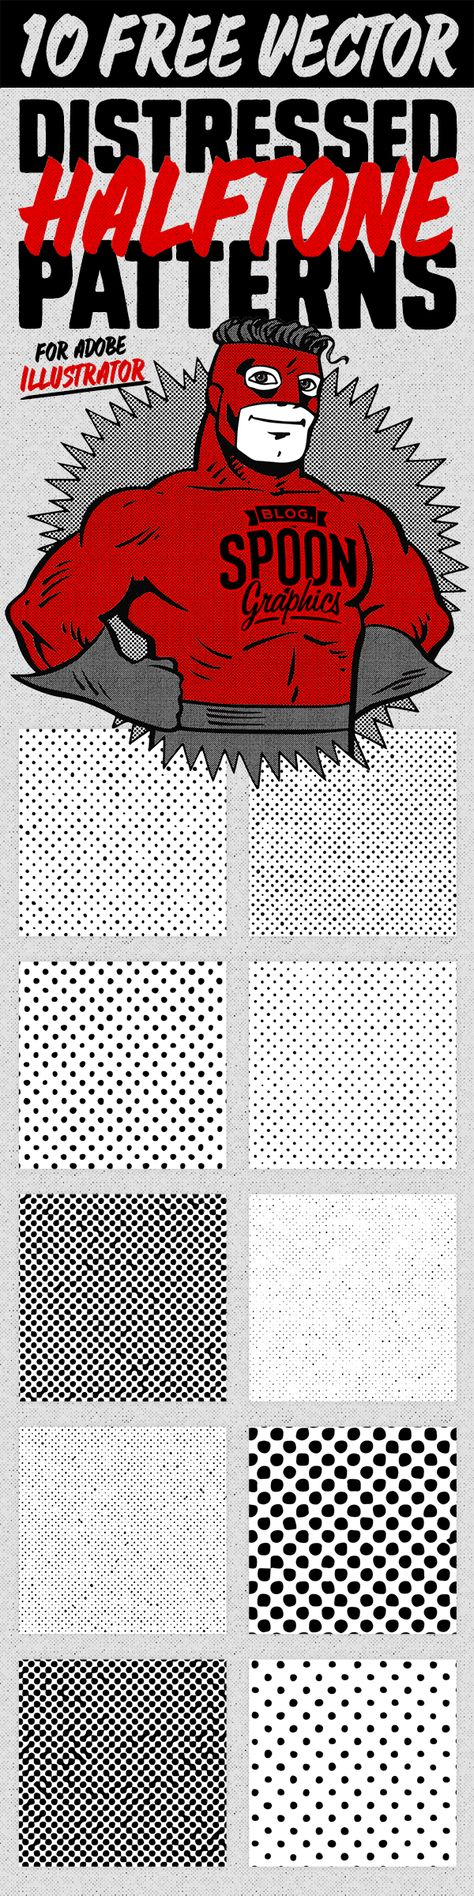 10 Distressed Vector Halftone Patterns For Illustrator Halftone